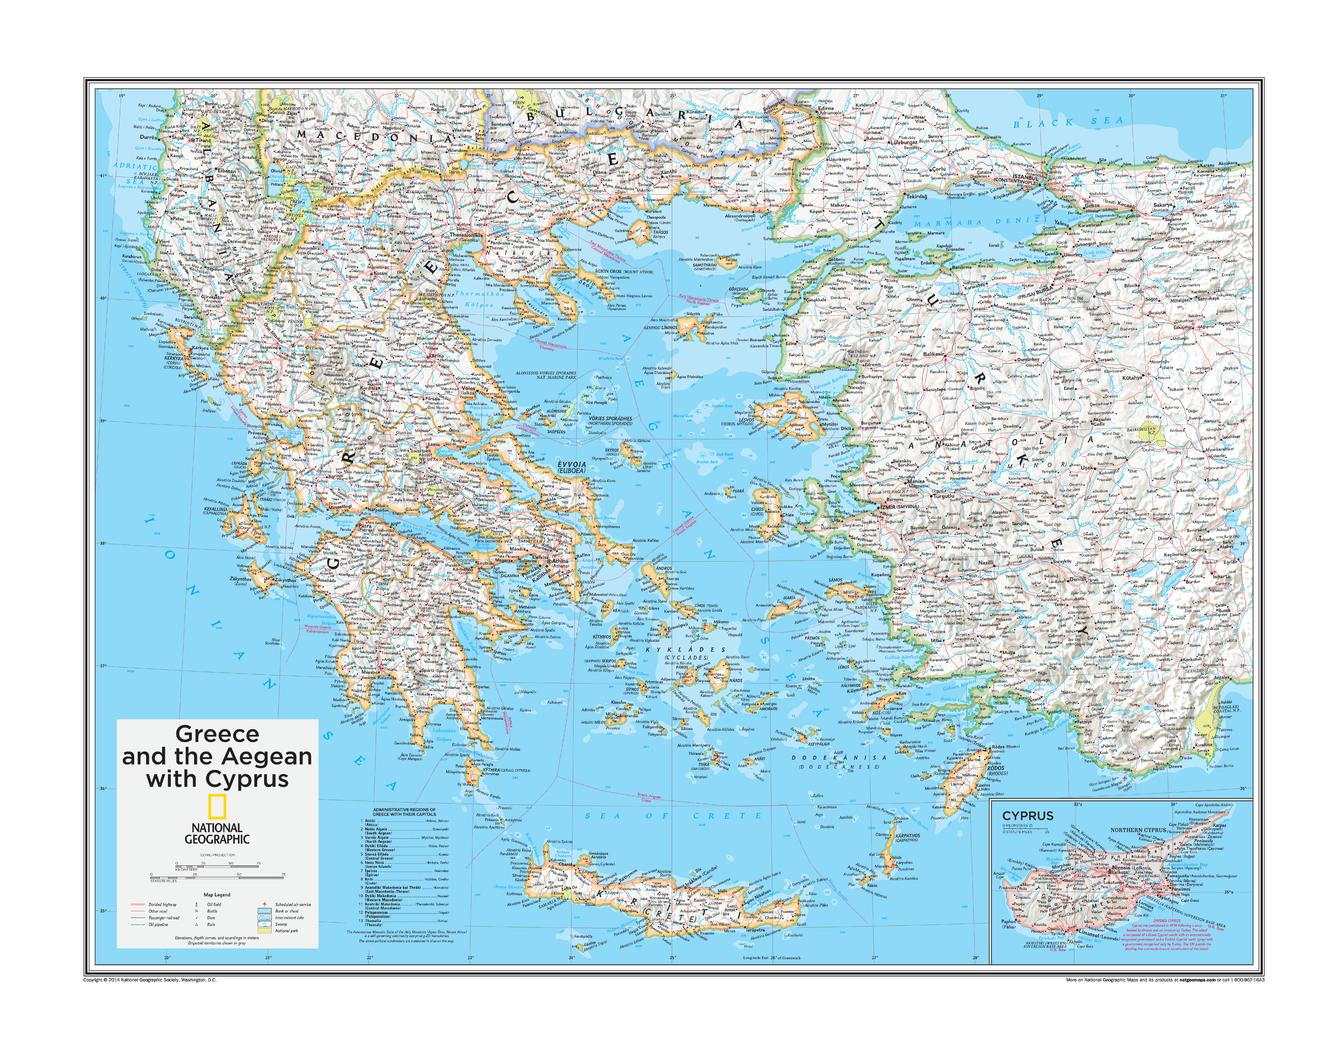 Greece and the Aegean with Cyprus